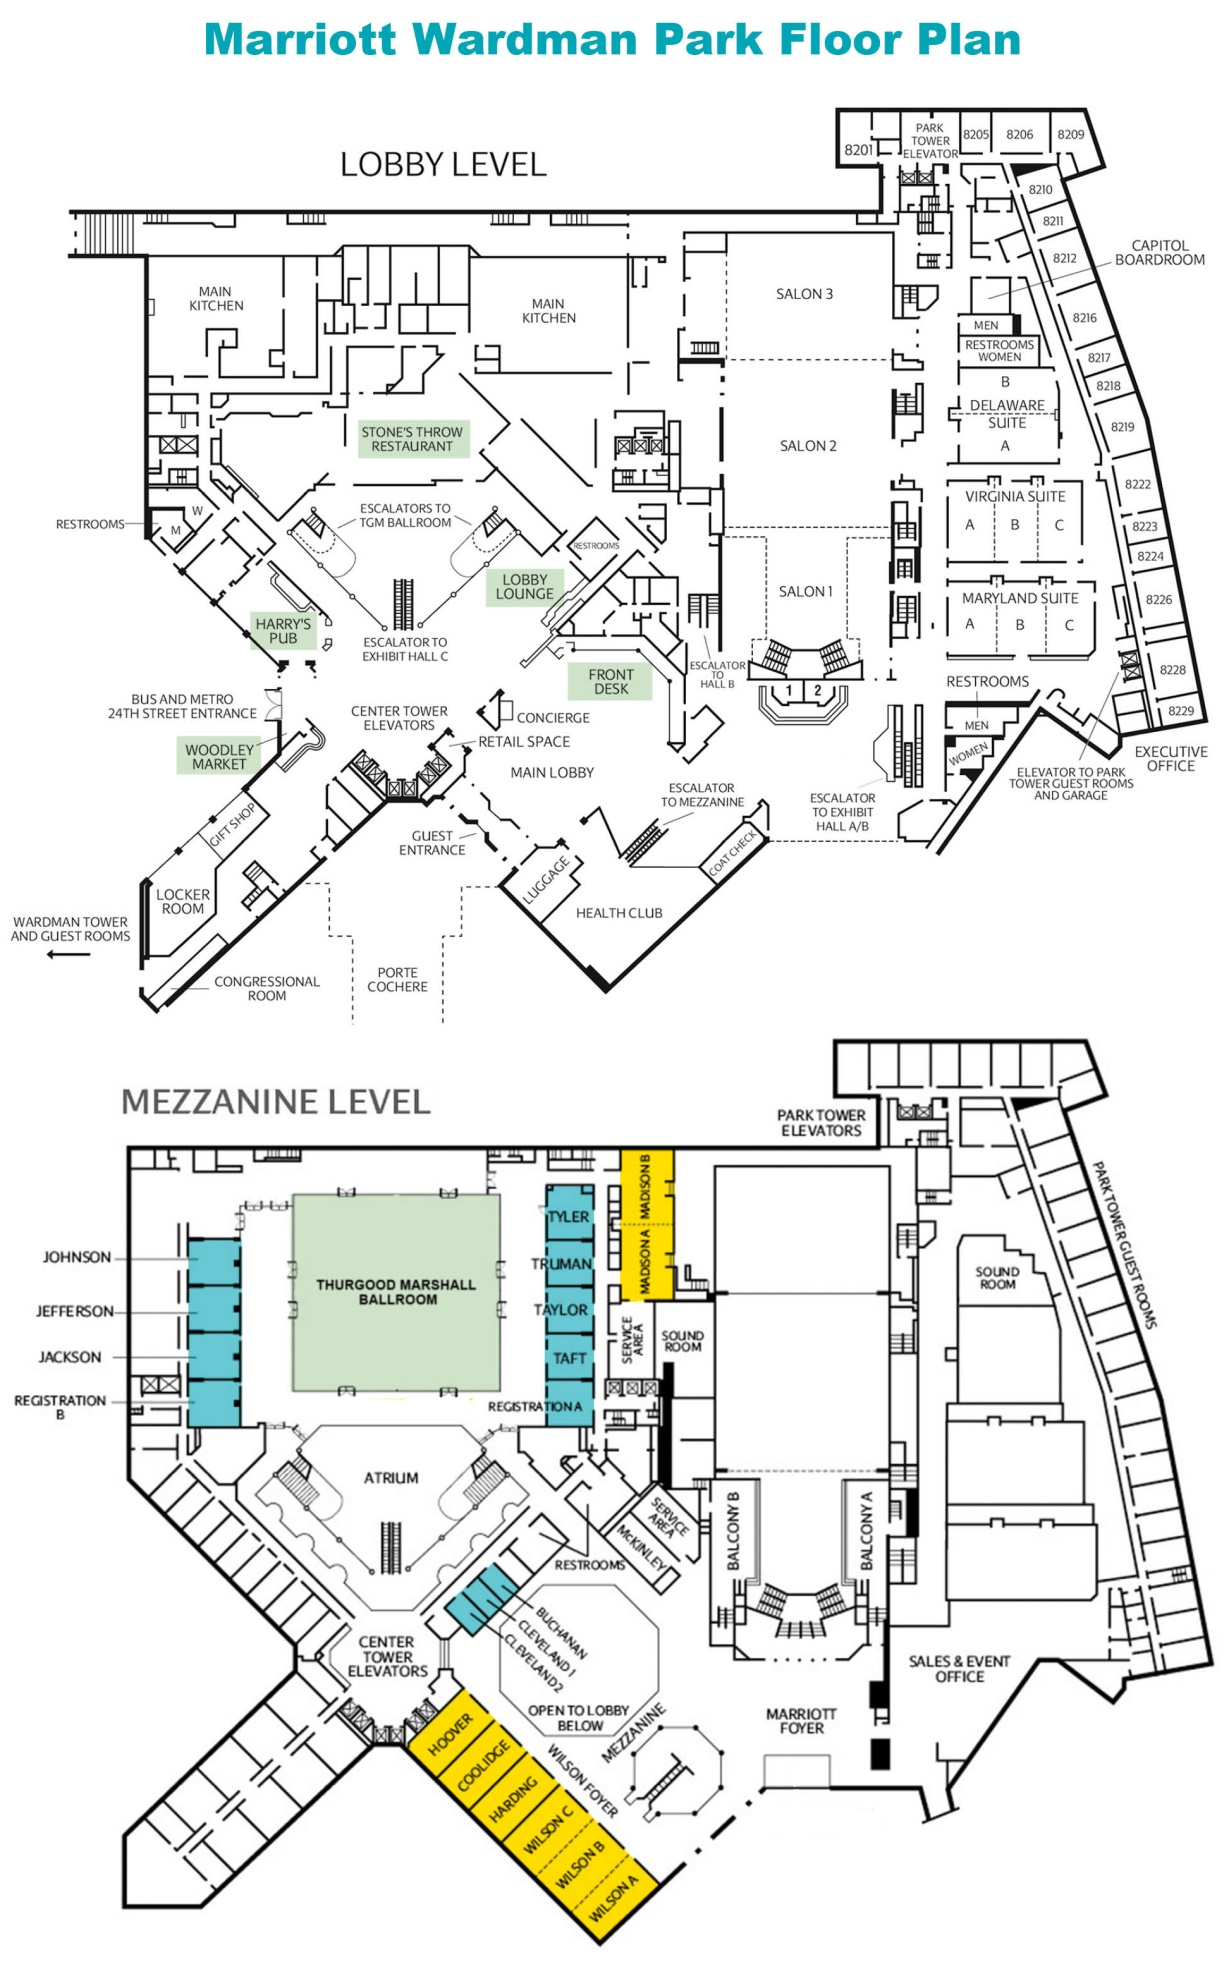 Washington Marriott Wardman Park Floor Plan Thefloors Co